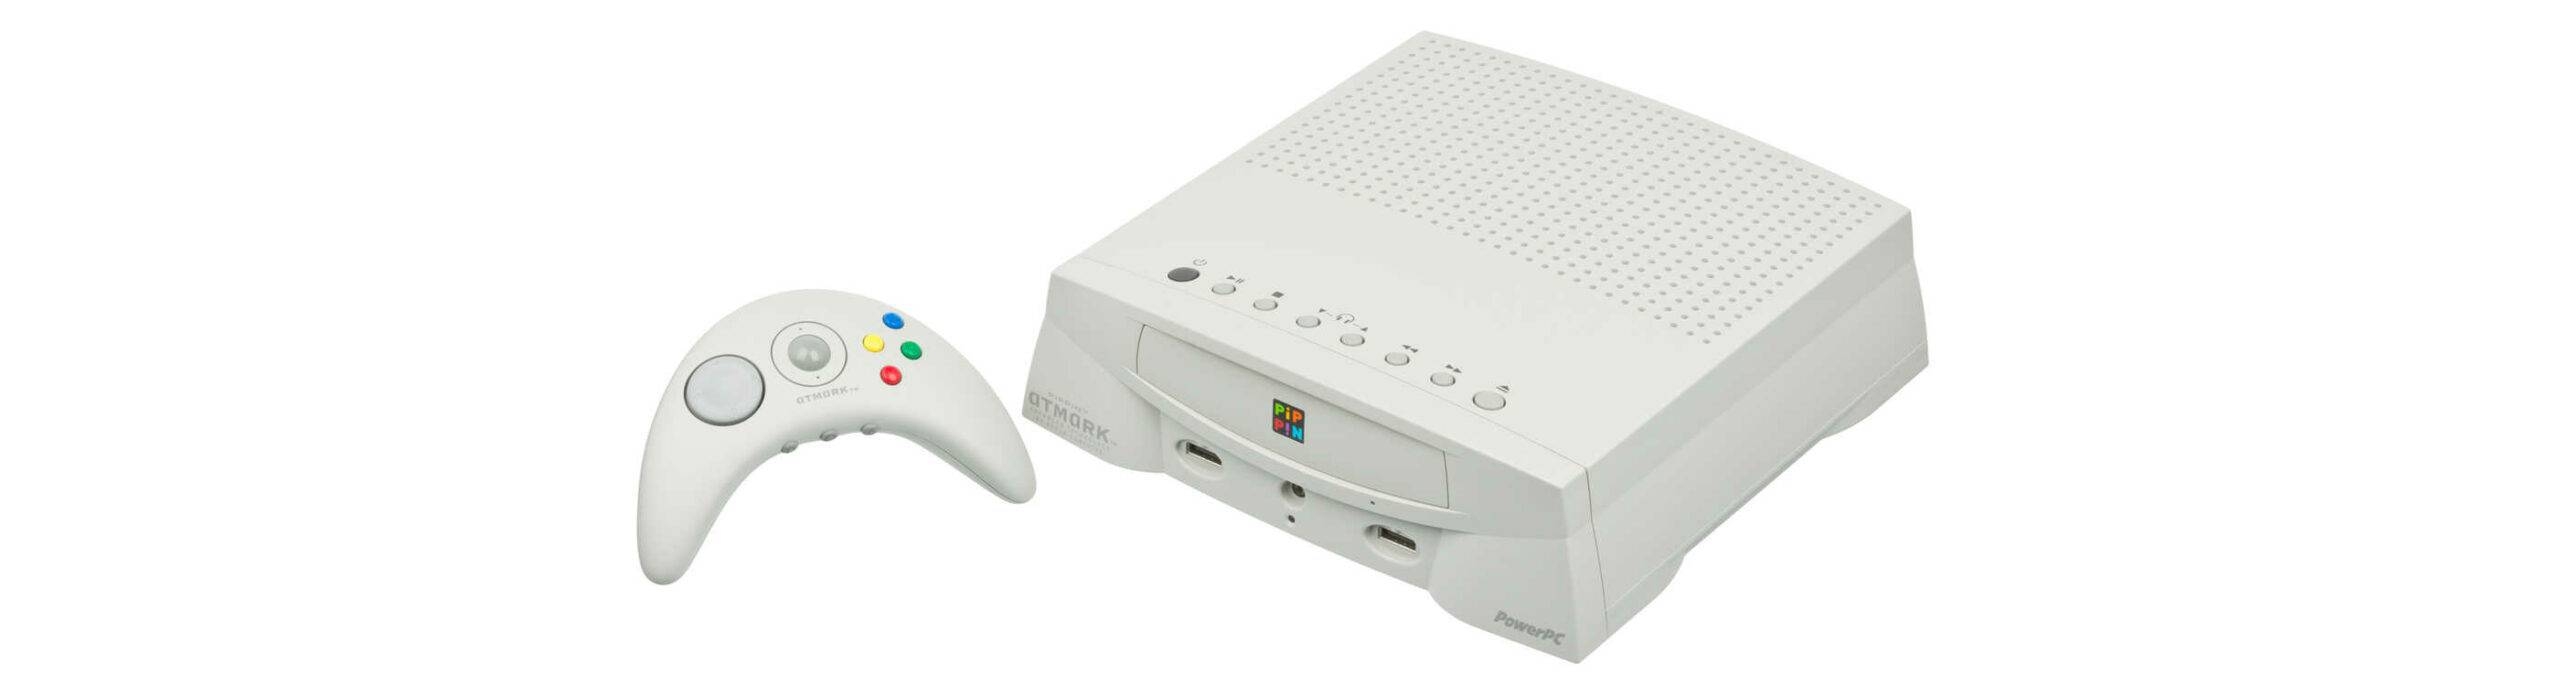 Apple's Pippin gaming device